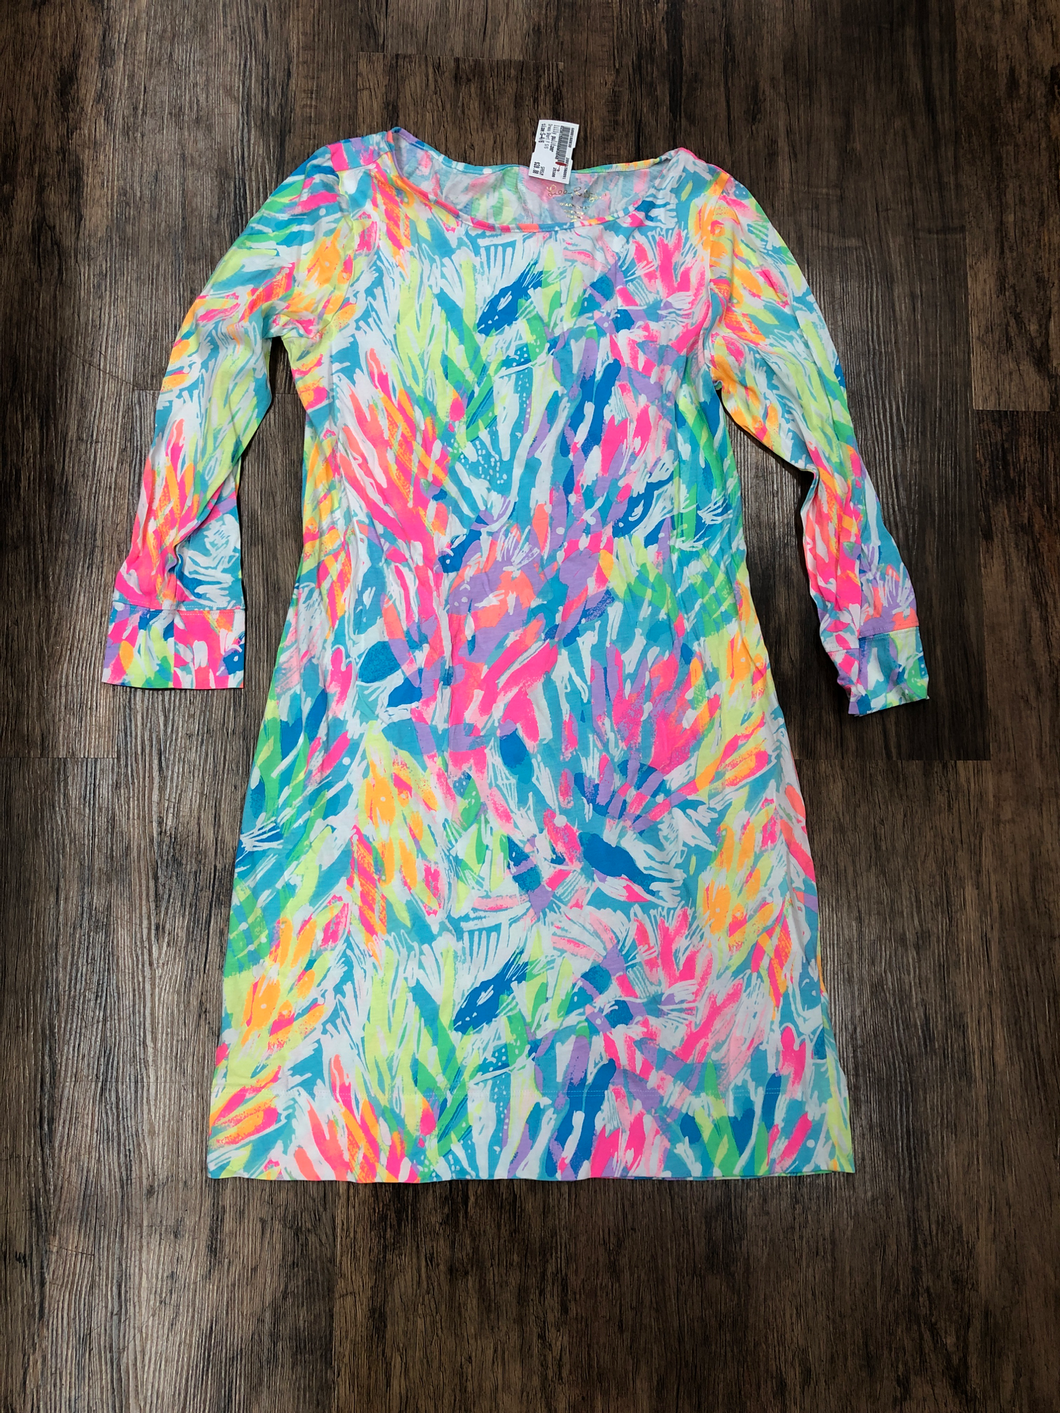 Lilly Pulitzer Dress Size S (4 6)